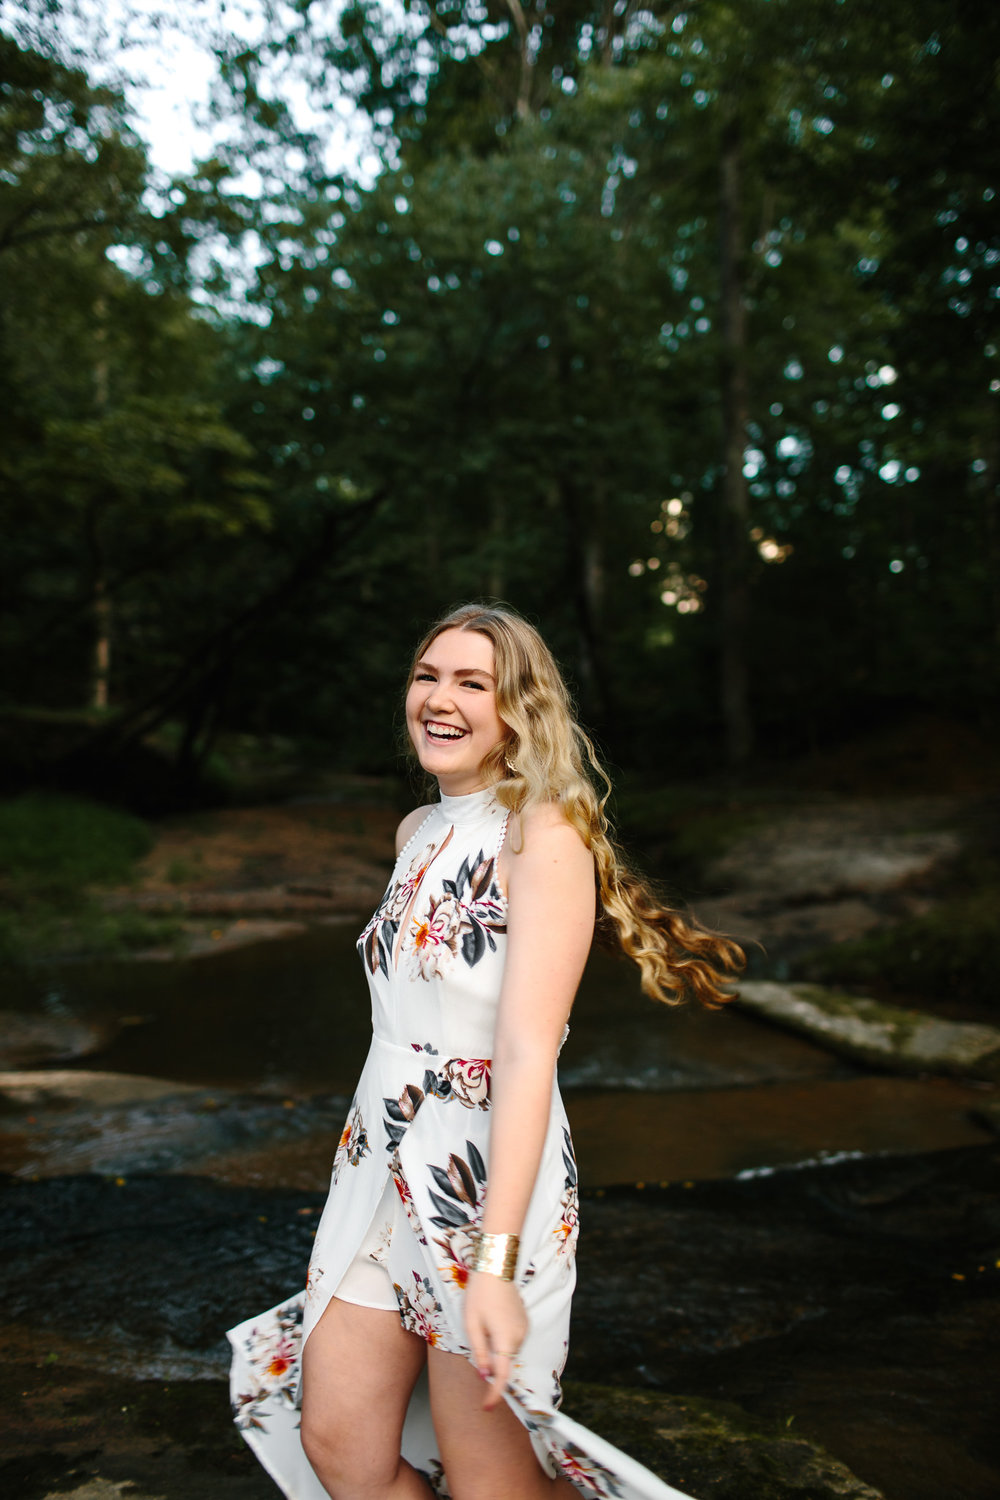 jennichandlerphotography_MadisonSenior_WEB-15.jpg